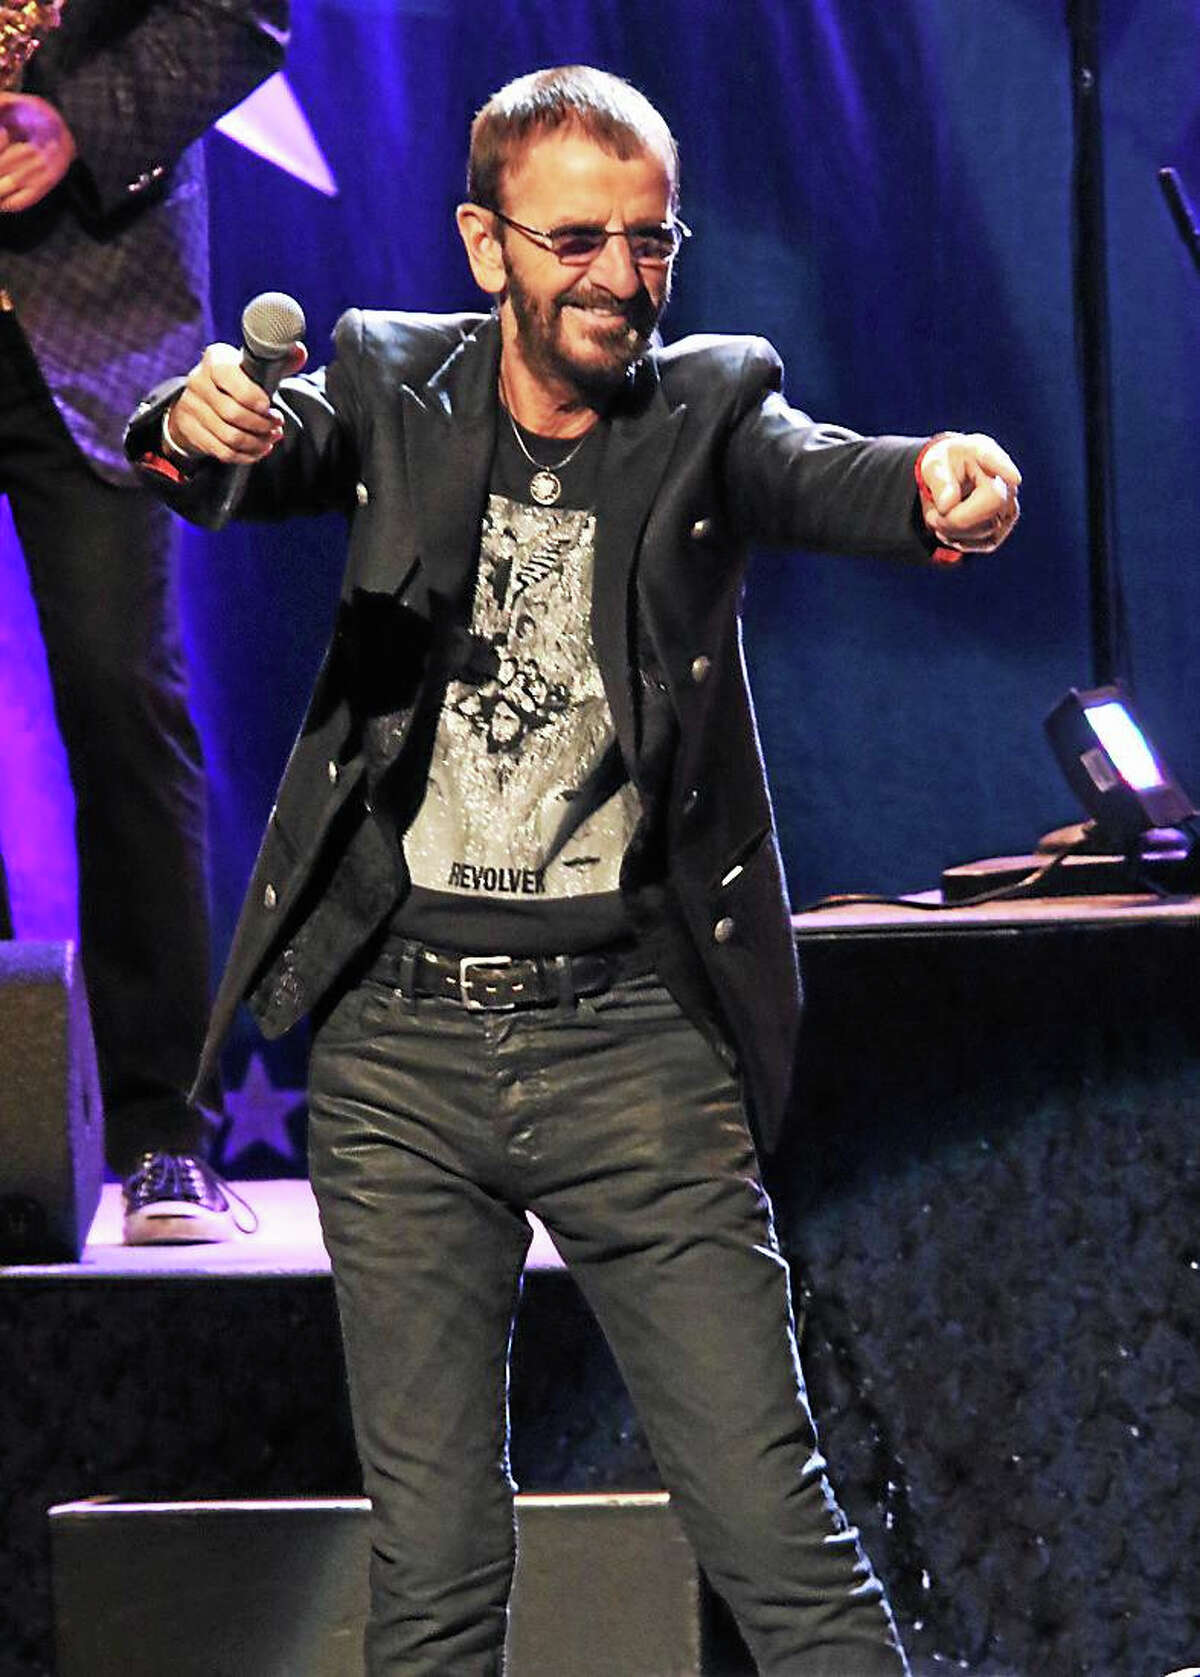 Photo by John Atashian Musician Ringo Starr is shown having fun on stage at the Grand Theater in the Foxwoods Resort Casino Oct. 24. His All Starr band included musicians Todd Rundgren, Steve Lukather of Toto, Richard Page of Mister Mister and Greg Rolie of Santana. The concert featured songs from all of the band members' solo careers, plus Ringo's biggest hits with The Beatles and his own solo career. To view all upcoming entertainment coming the Foxwoods Resort Casino, go to www.foxwoods.com.